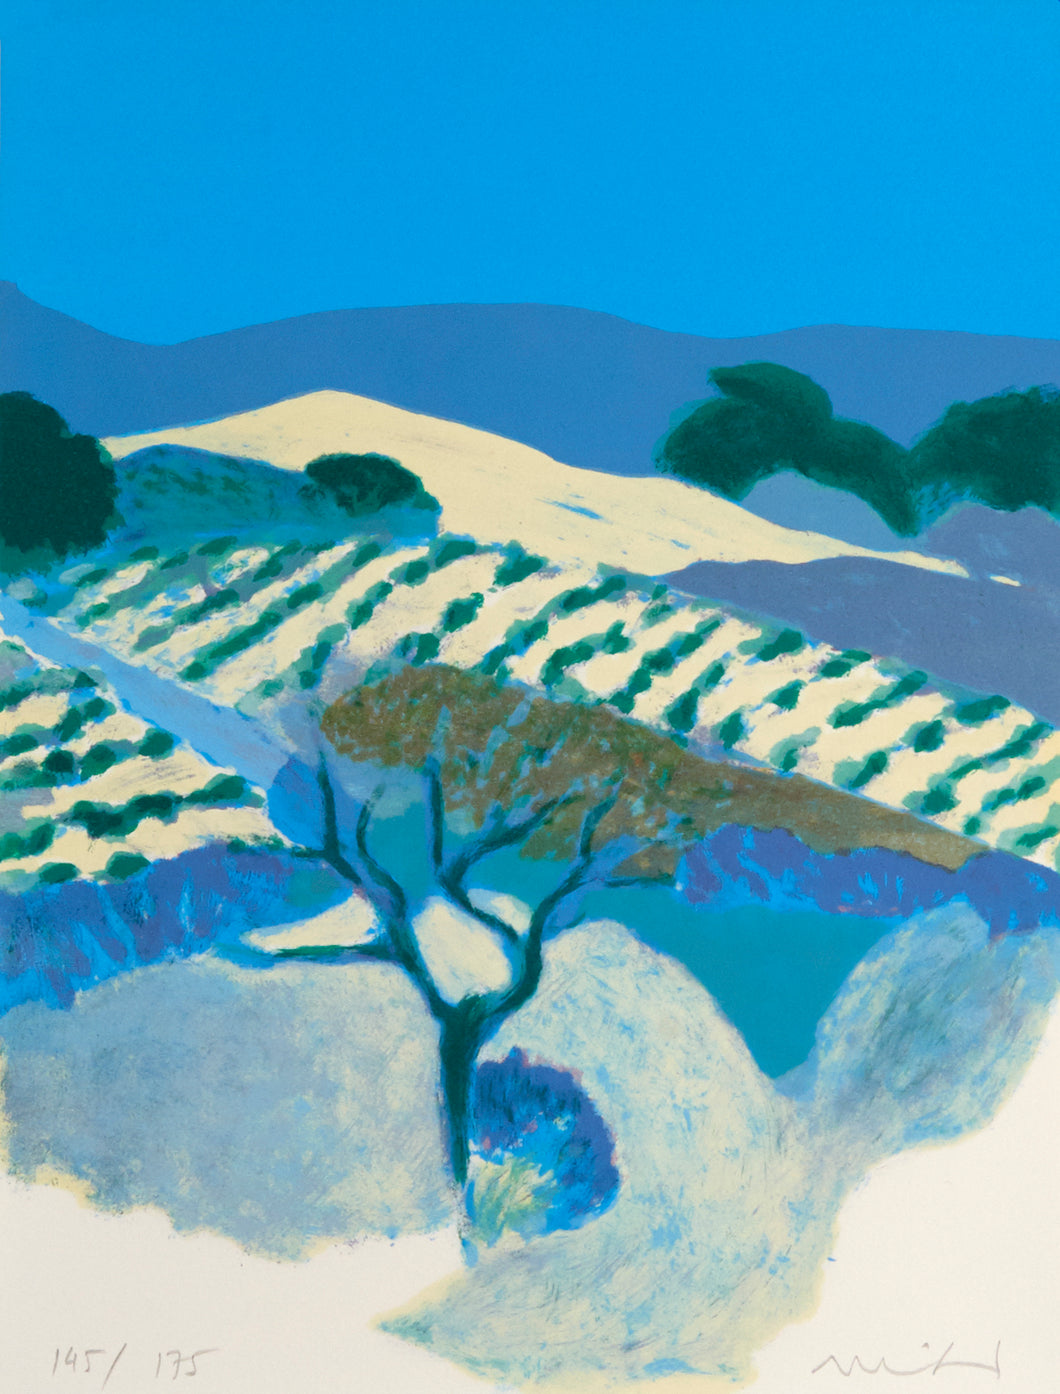 Provence IV by Roger Mühl 1986